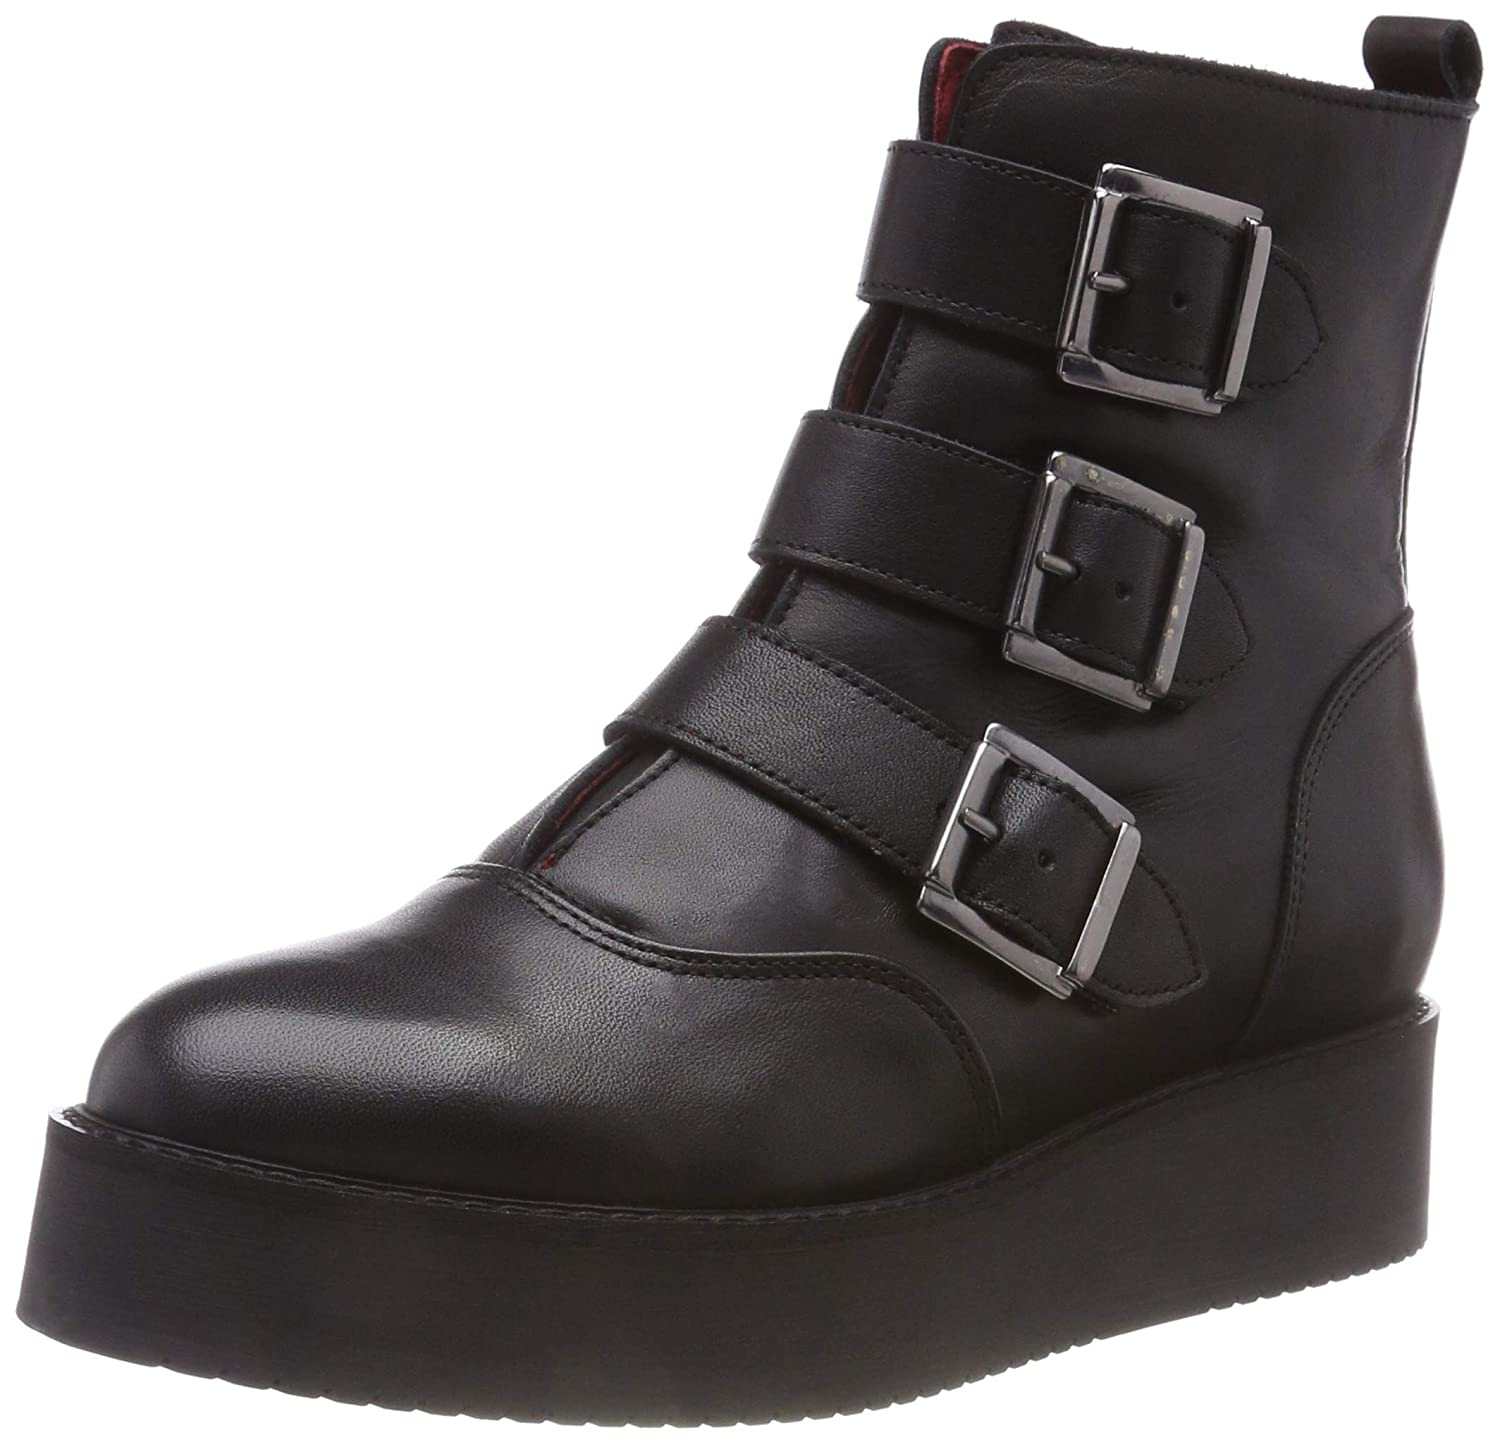 Buffalo Damen Wax Nappa Leather Stiefeletten